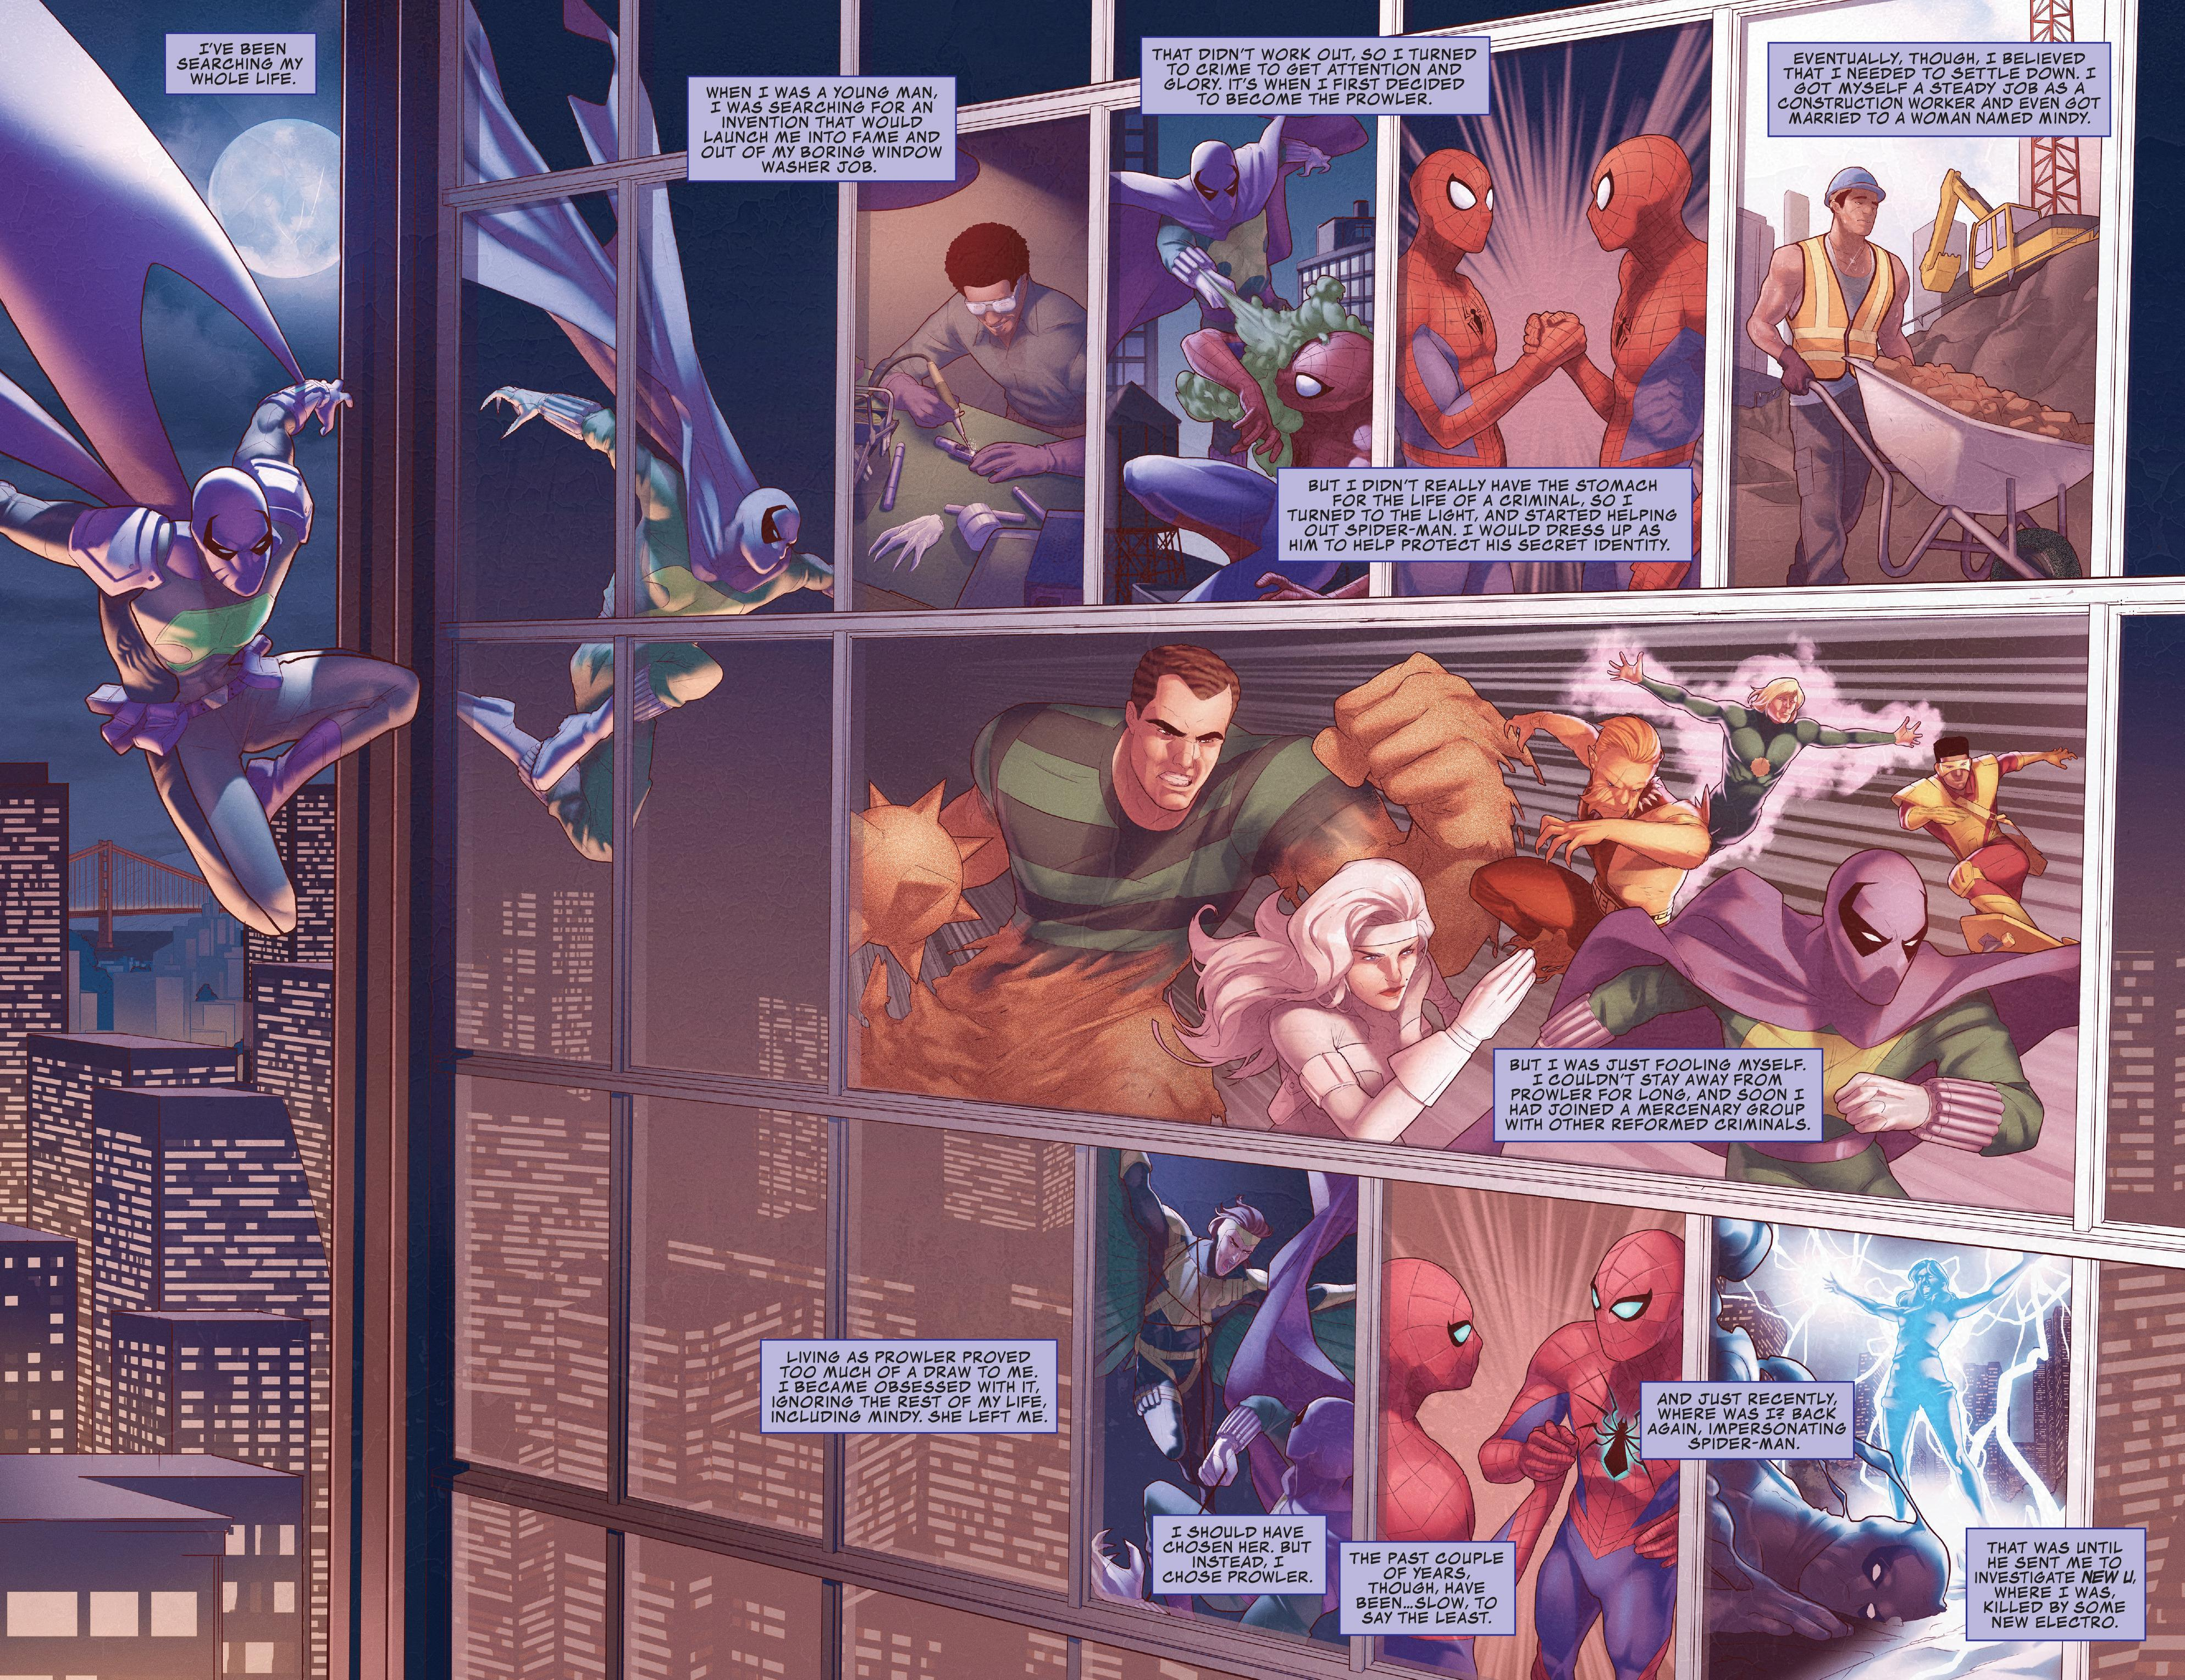 Prowler The Clone Conspiracy review